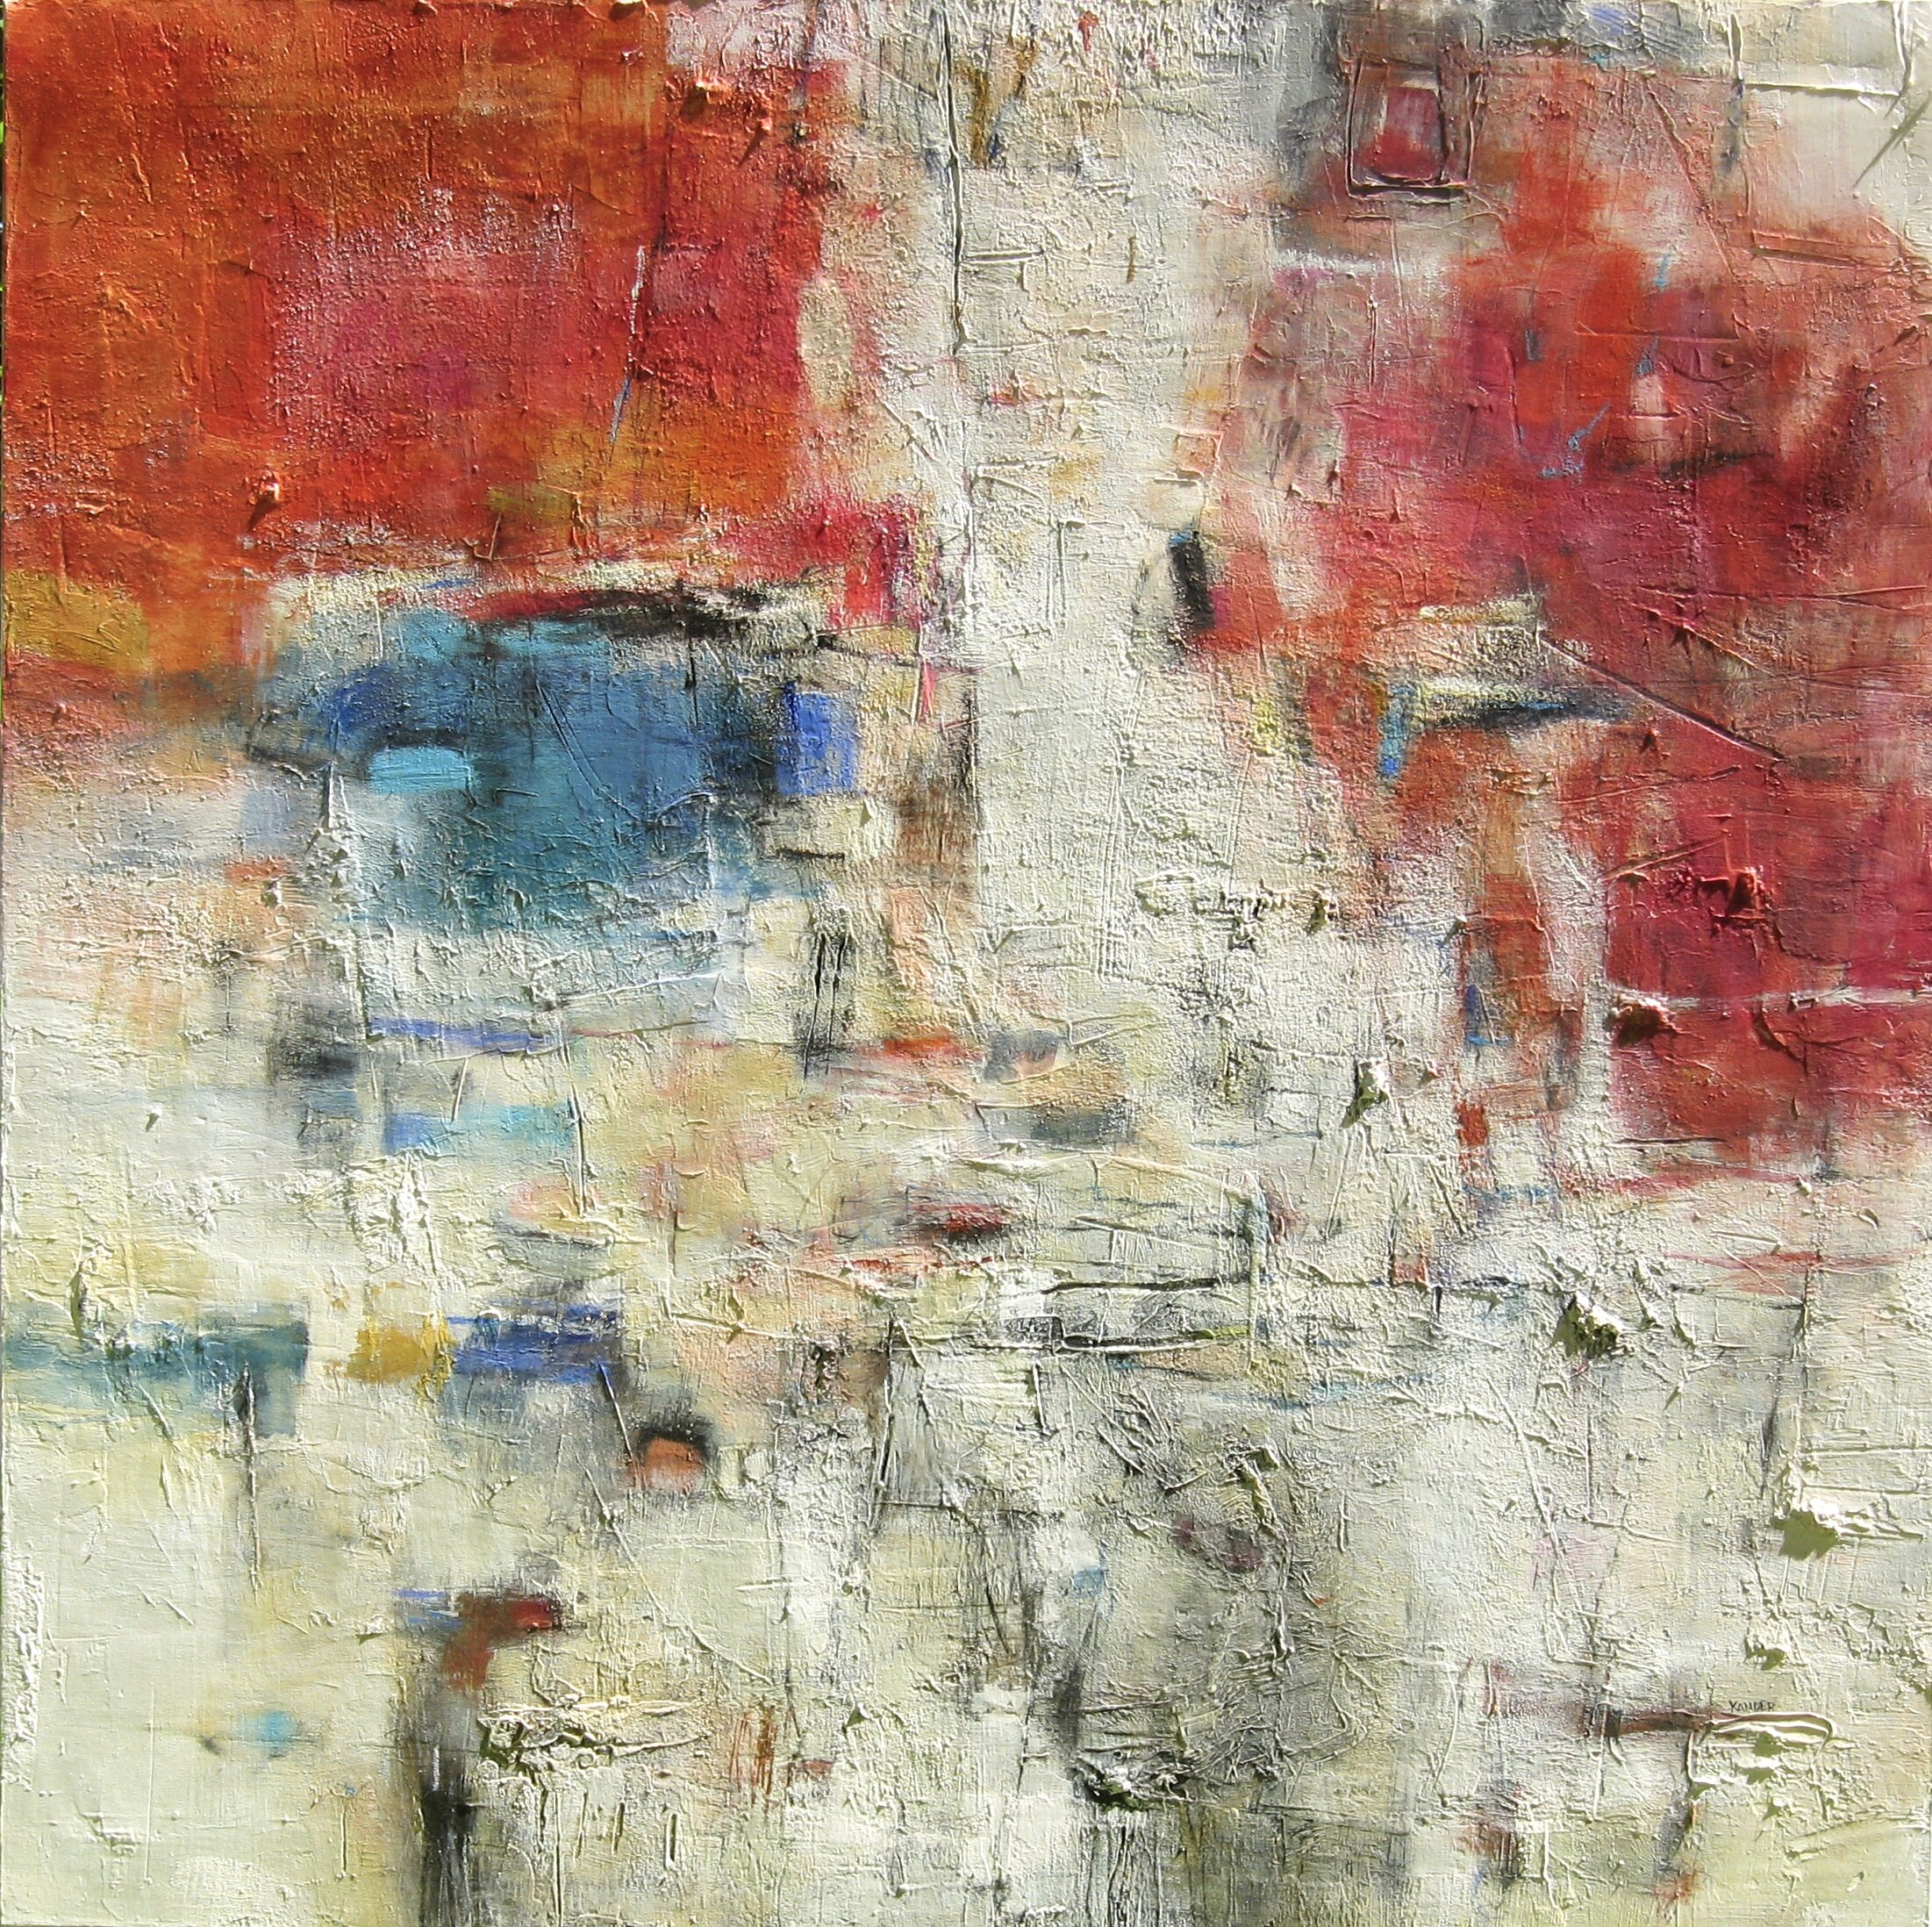 mixed media work on canvas by tamar kander, titled  Pond